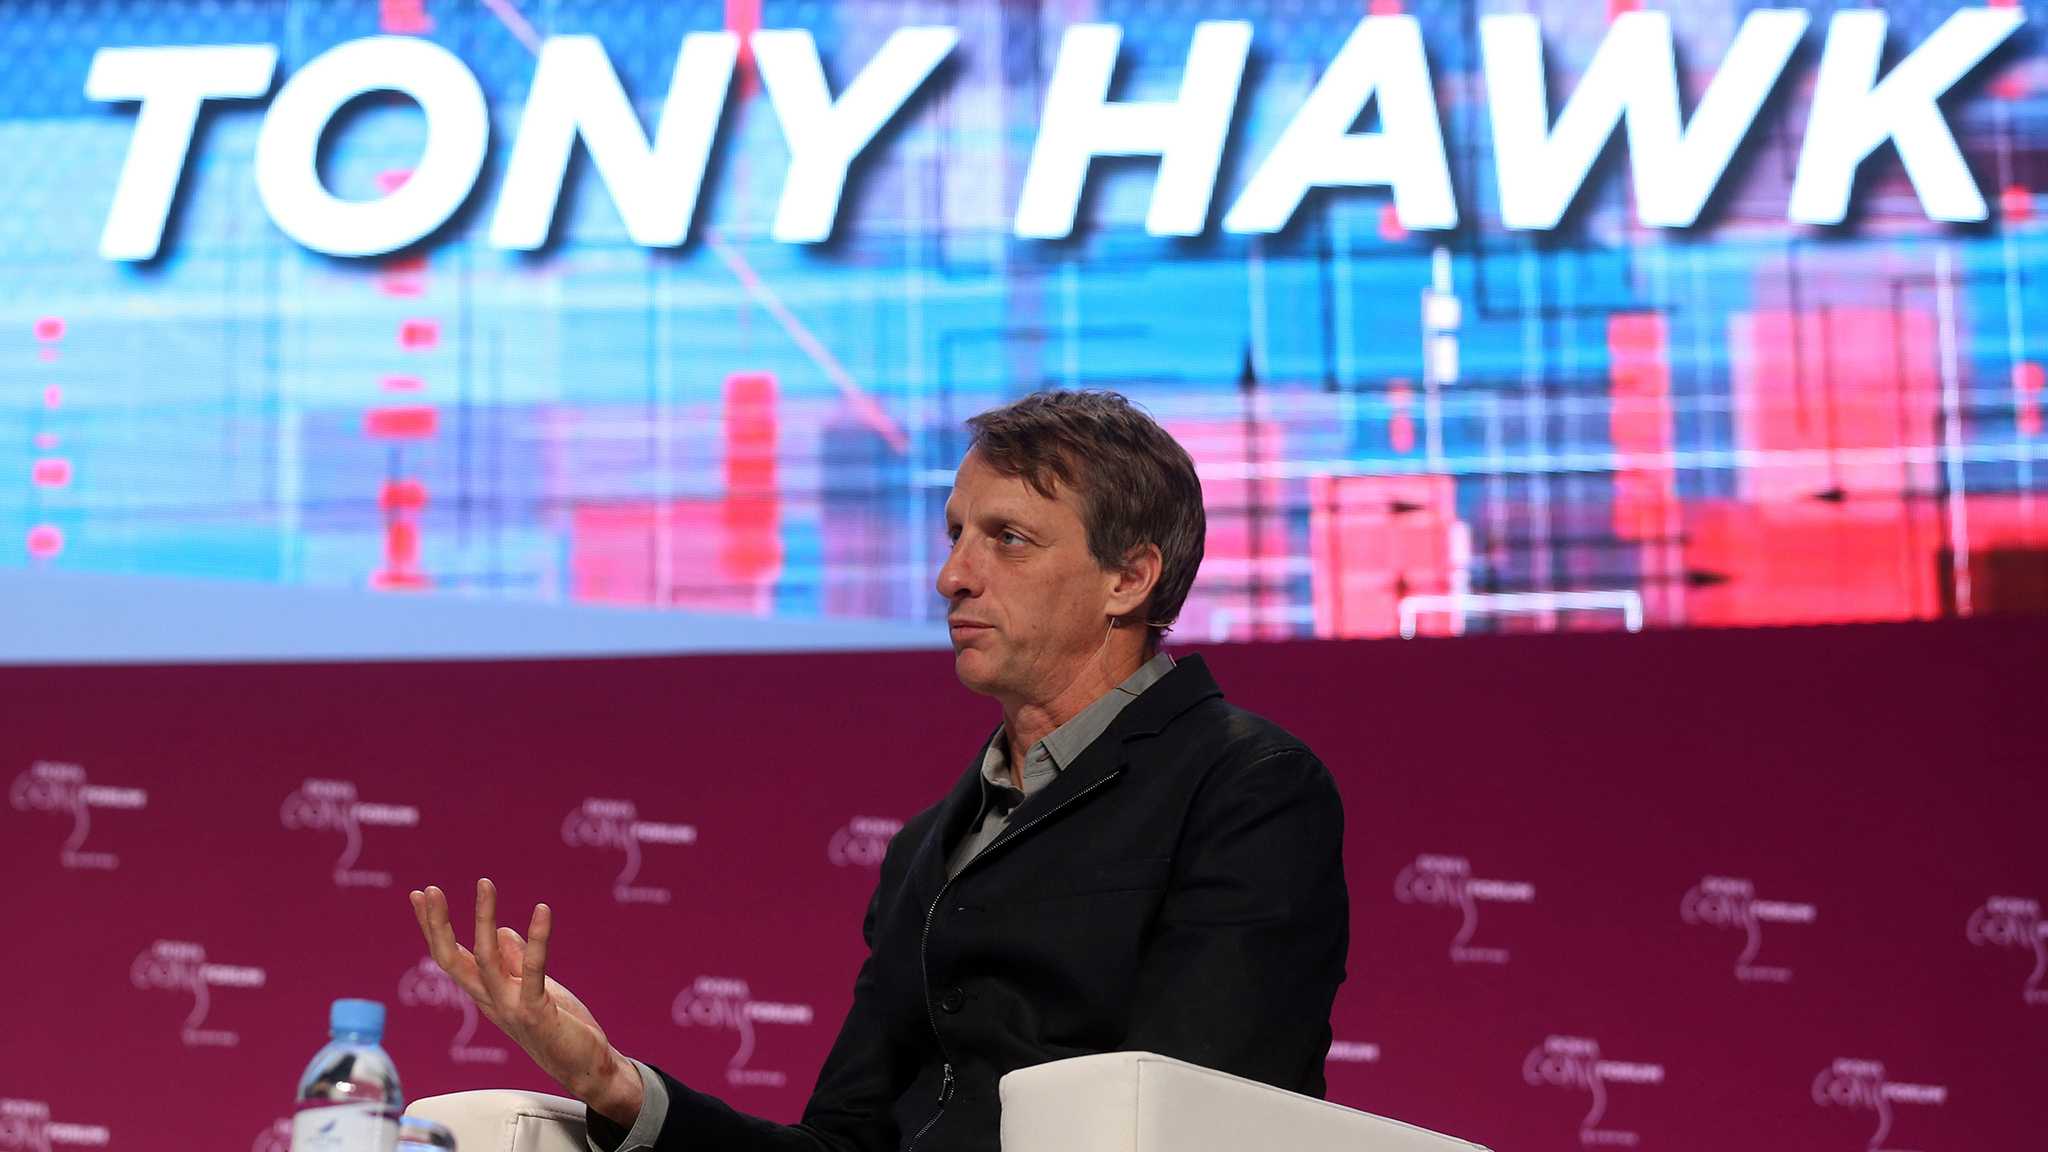 Last week, Tony Hawk told Larry King he has been involved in recent talks with the IOC and that skateboarding is very likely to be in the 2020 Games.